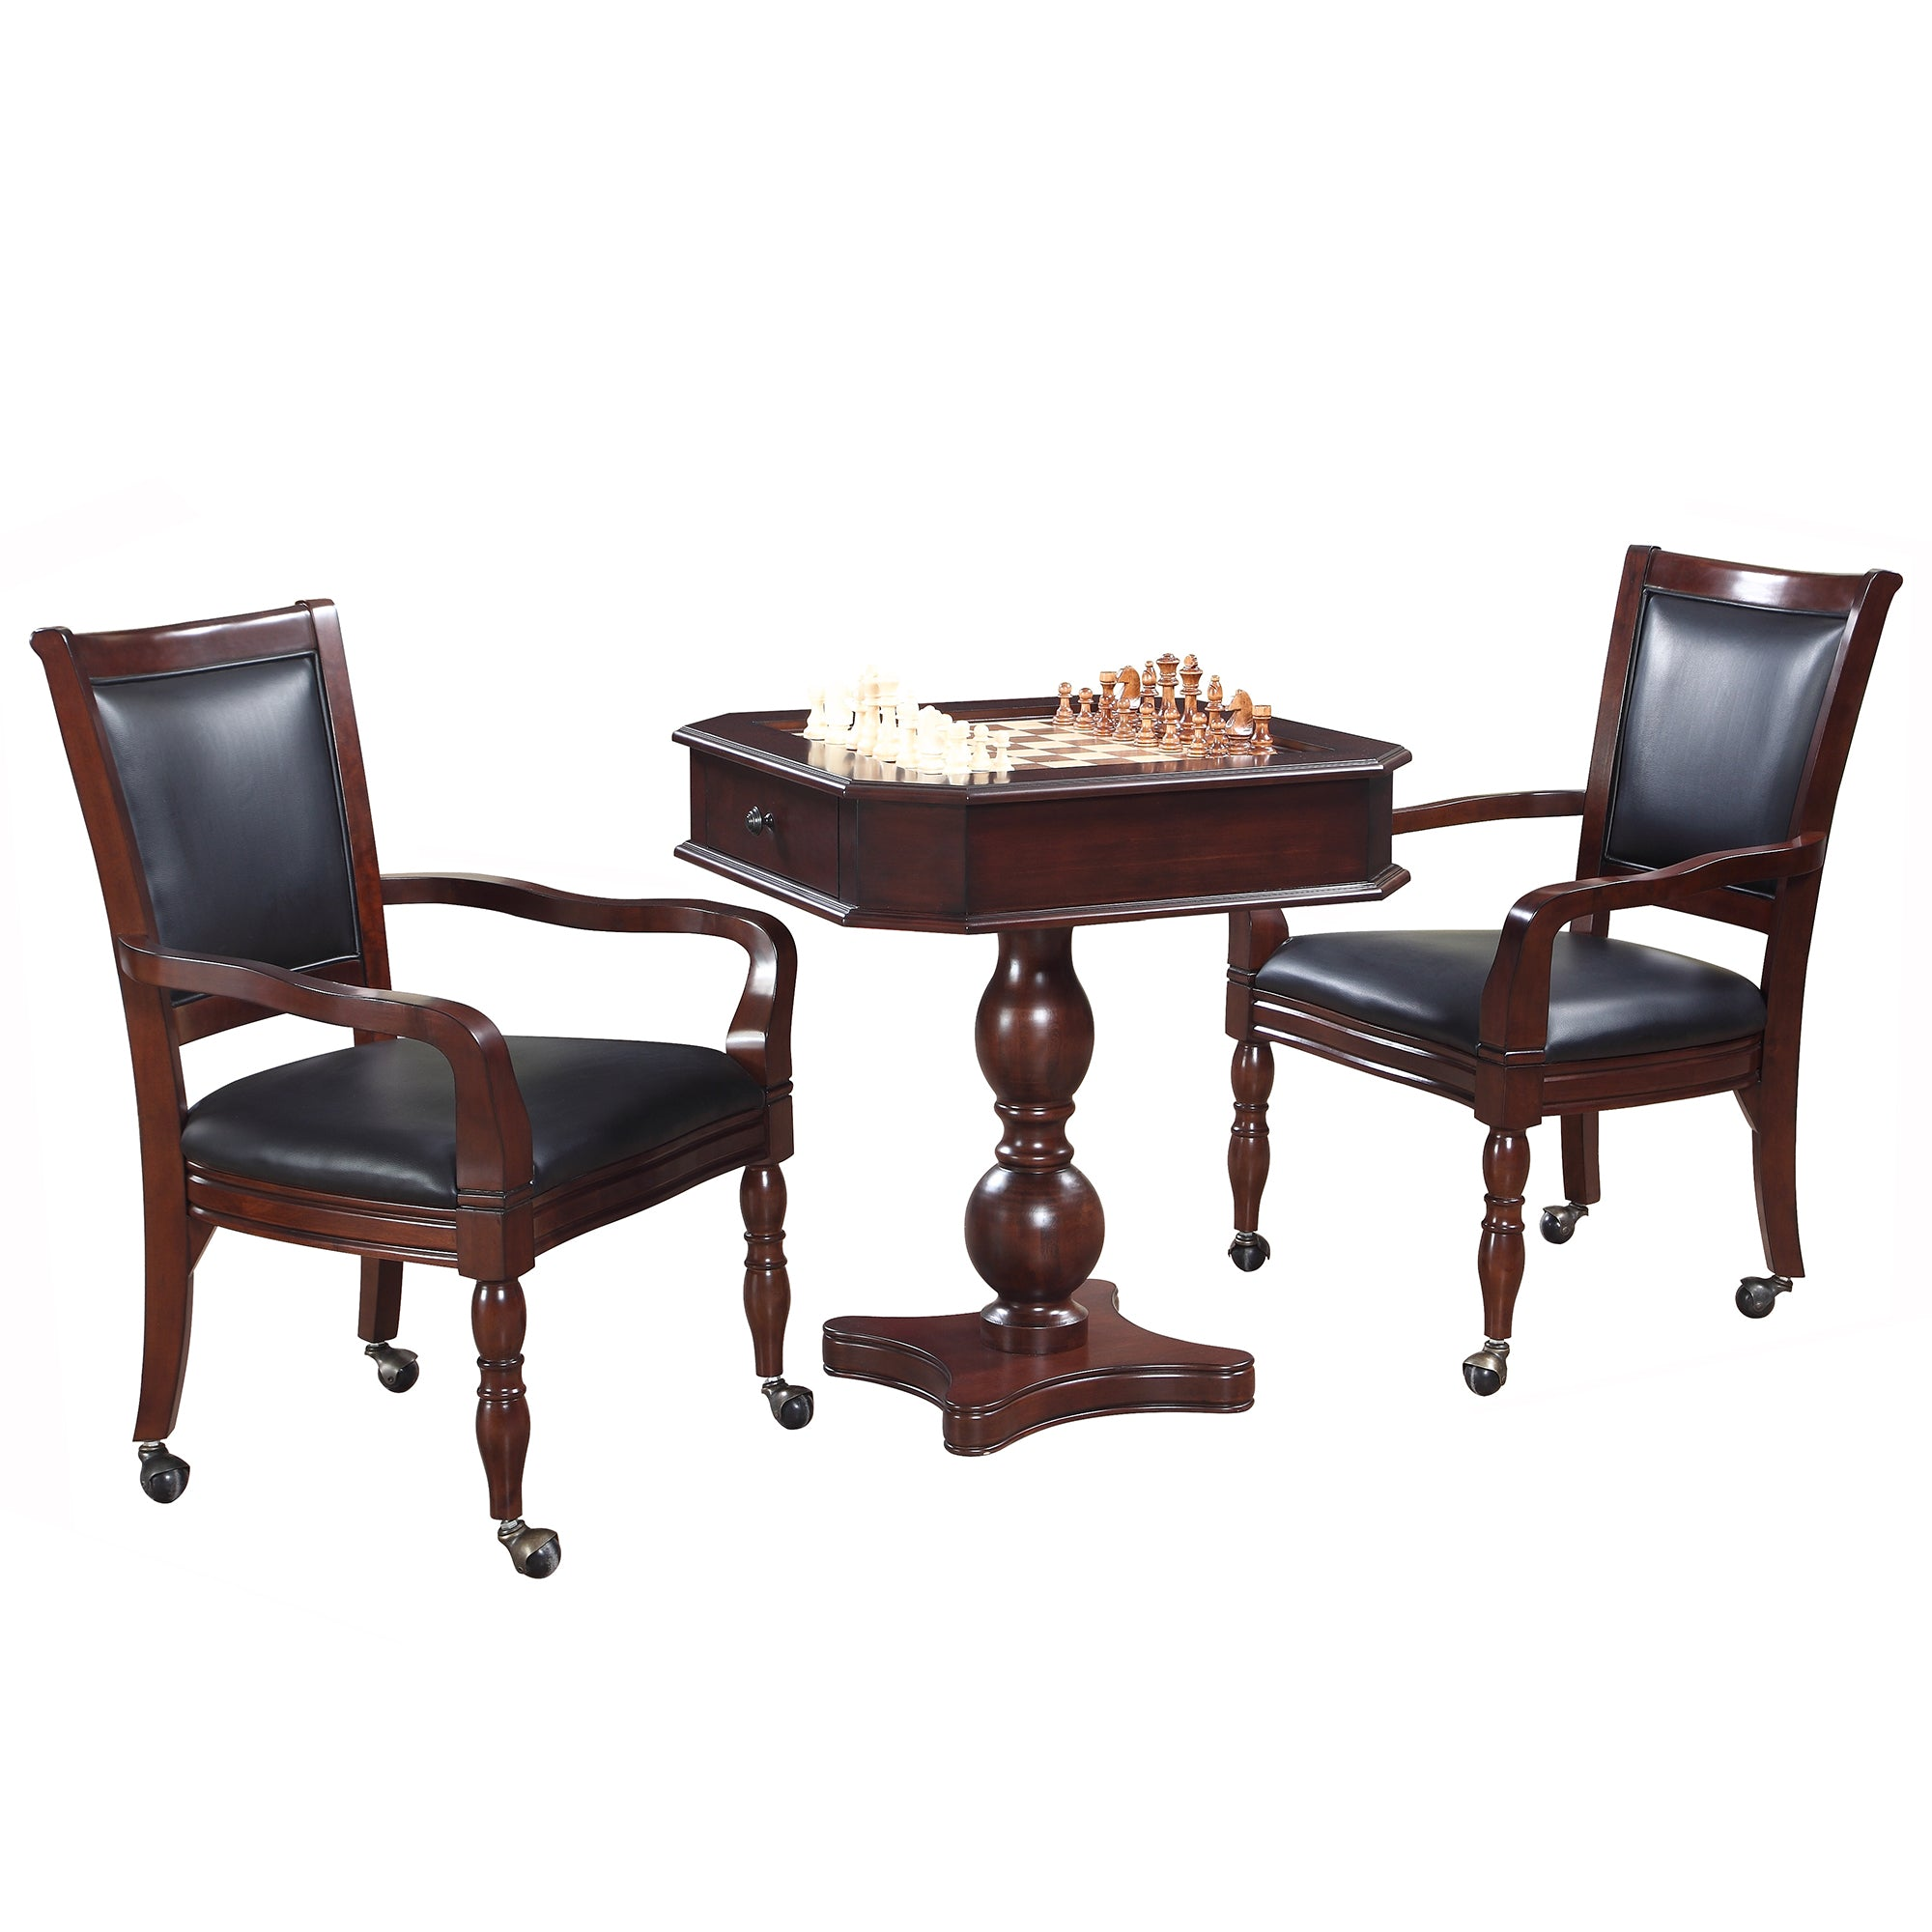 Hathaway Fortress 3 in 1 Mahogany Chess Game Table with Chairs  - Gaming Blaze